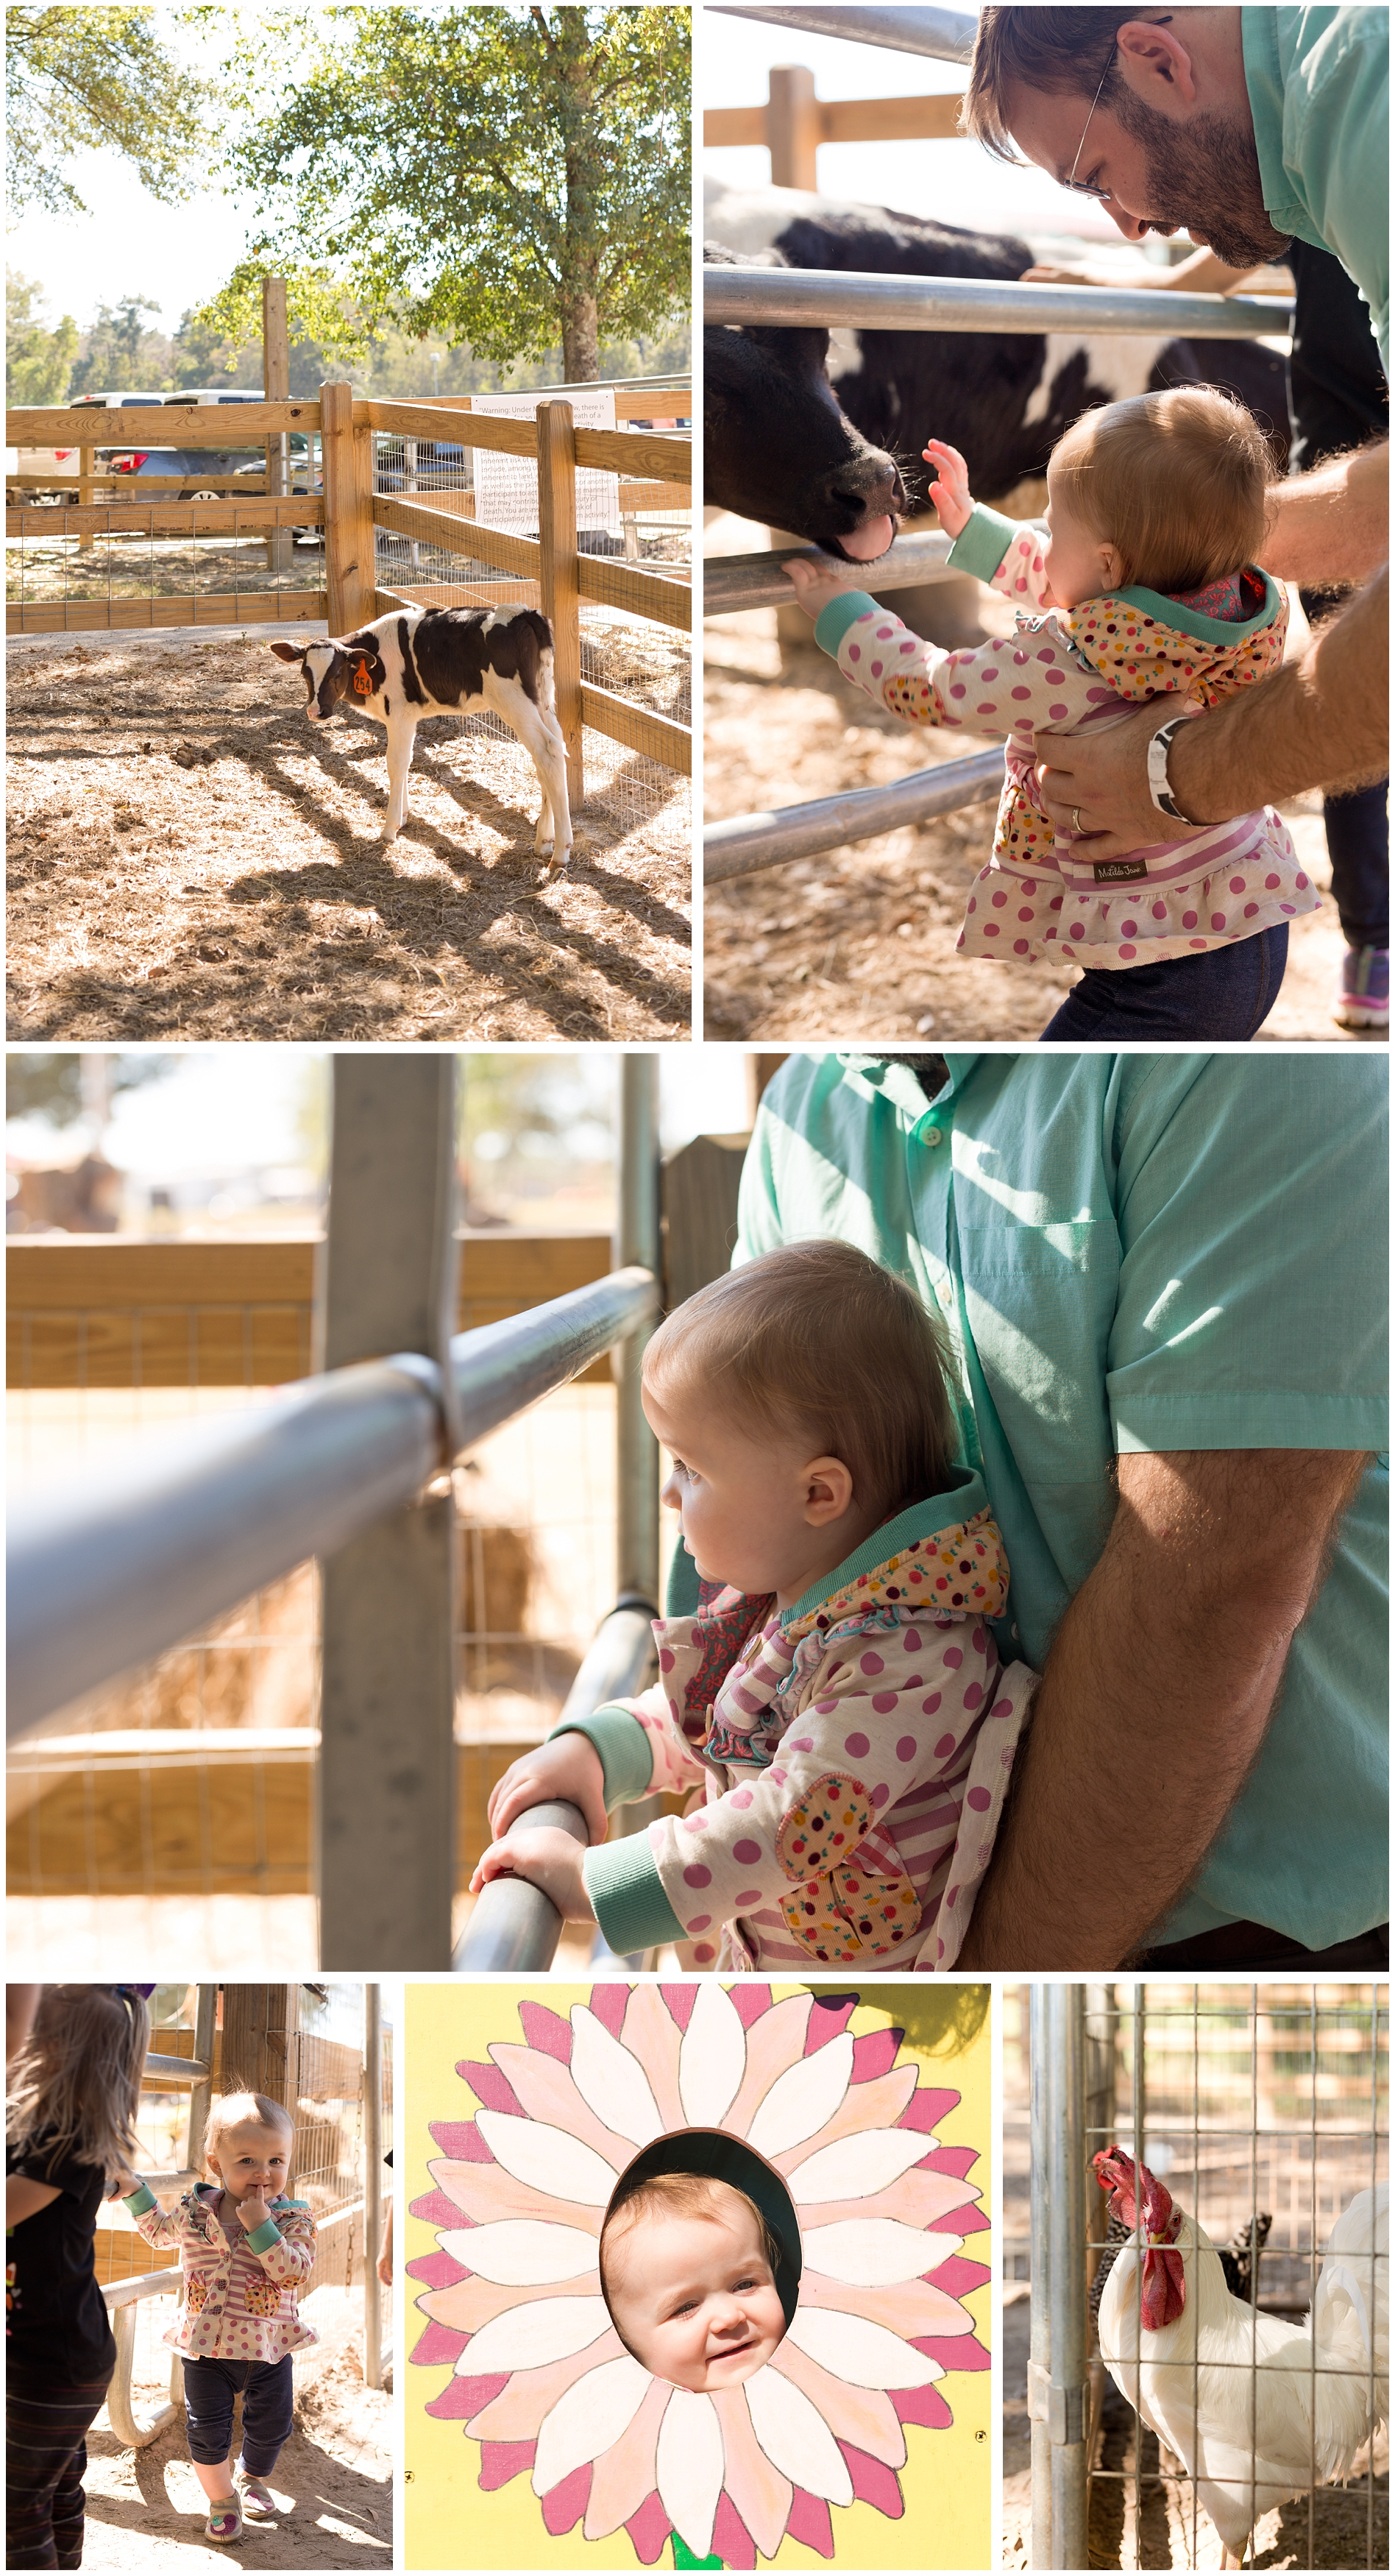 petting zoo at pumpkin patch (little girl and daddy)